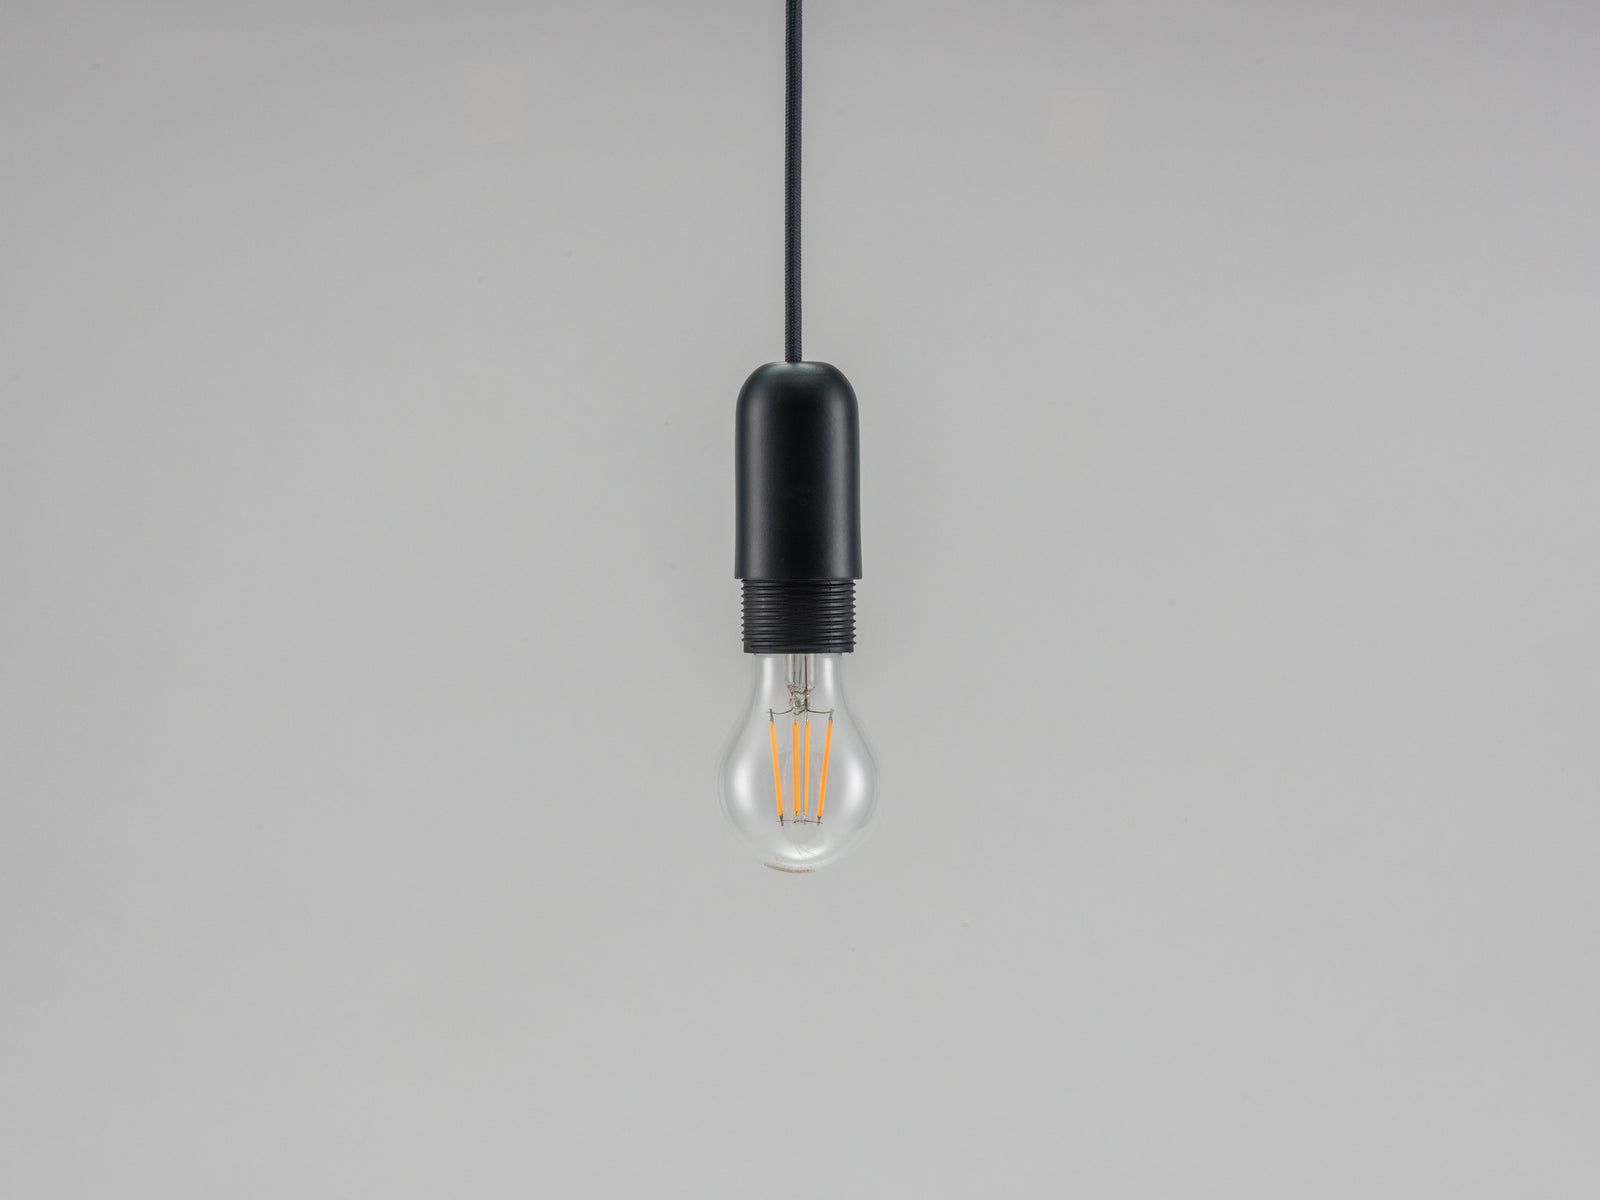 Es led 4w bulb | off | houseof.com